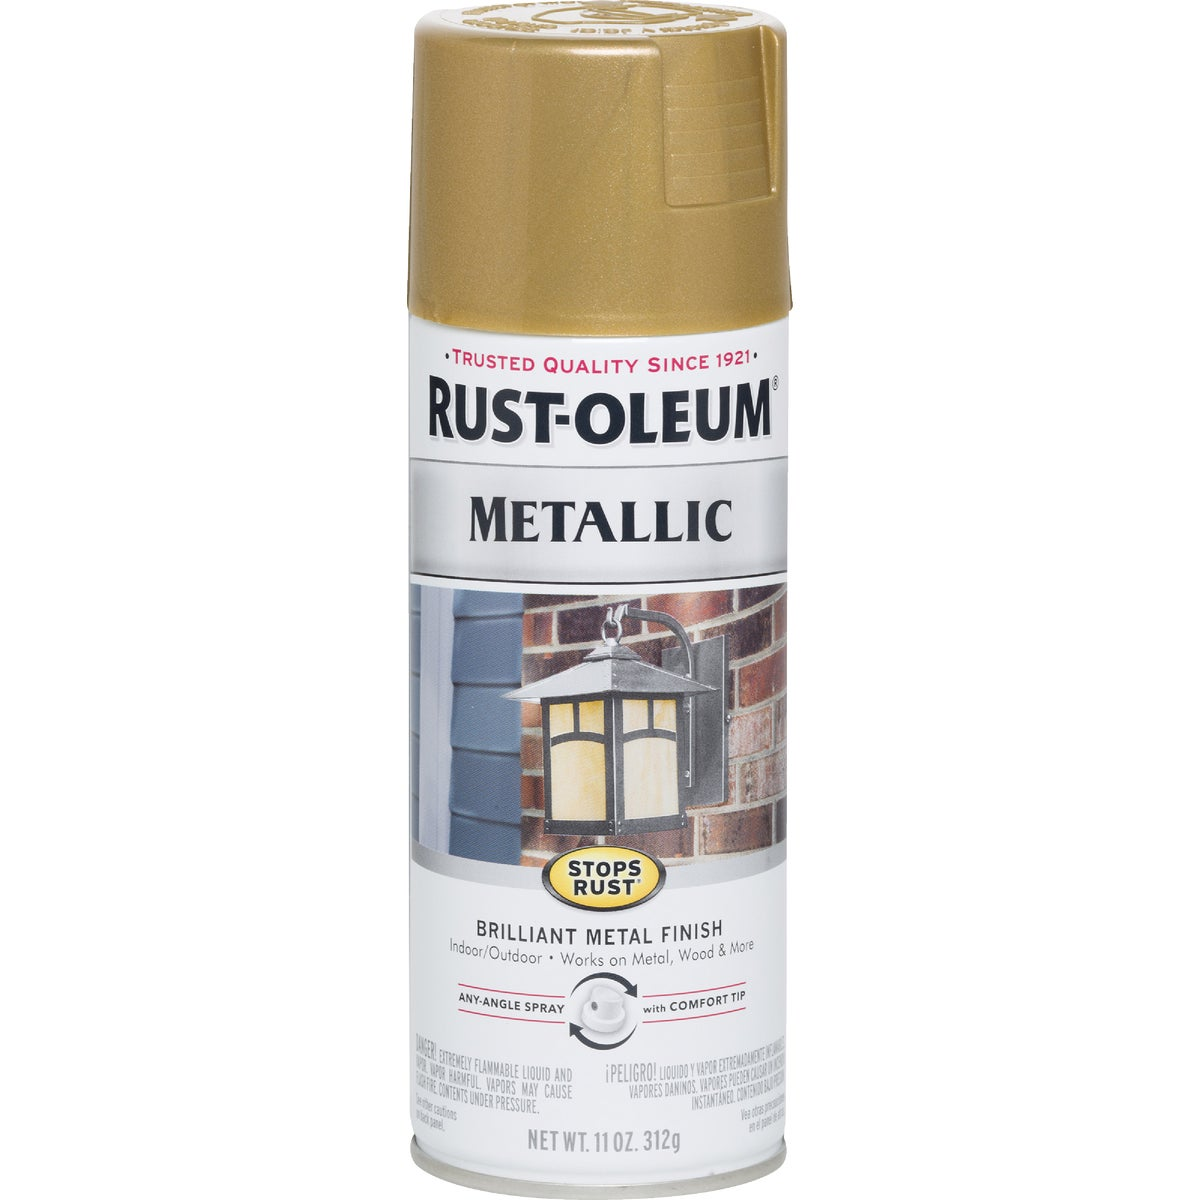 GLD RSH MTLC SPRAY PAINT - 7270-830 by Rustoleum